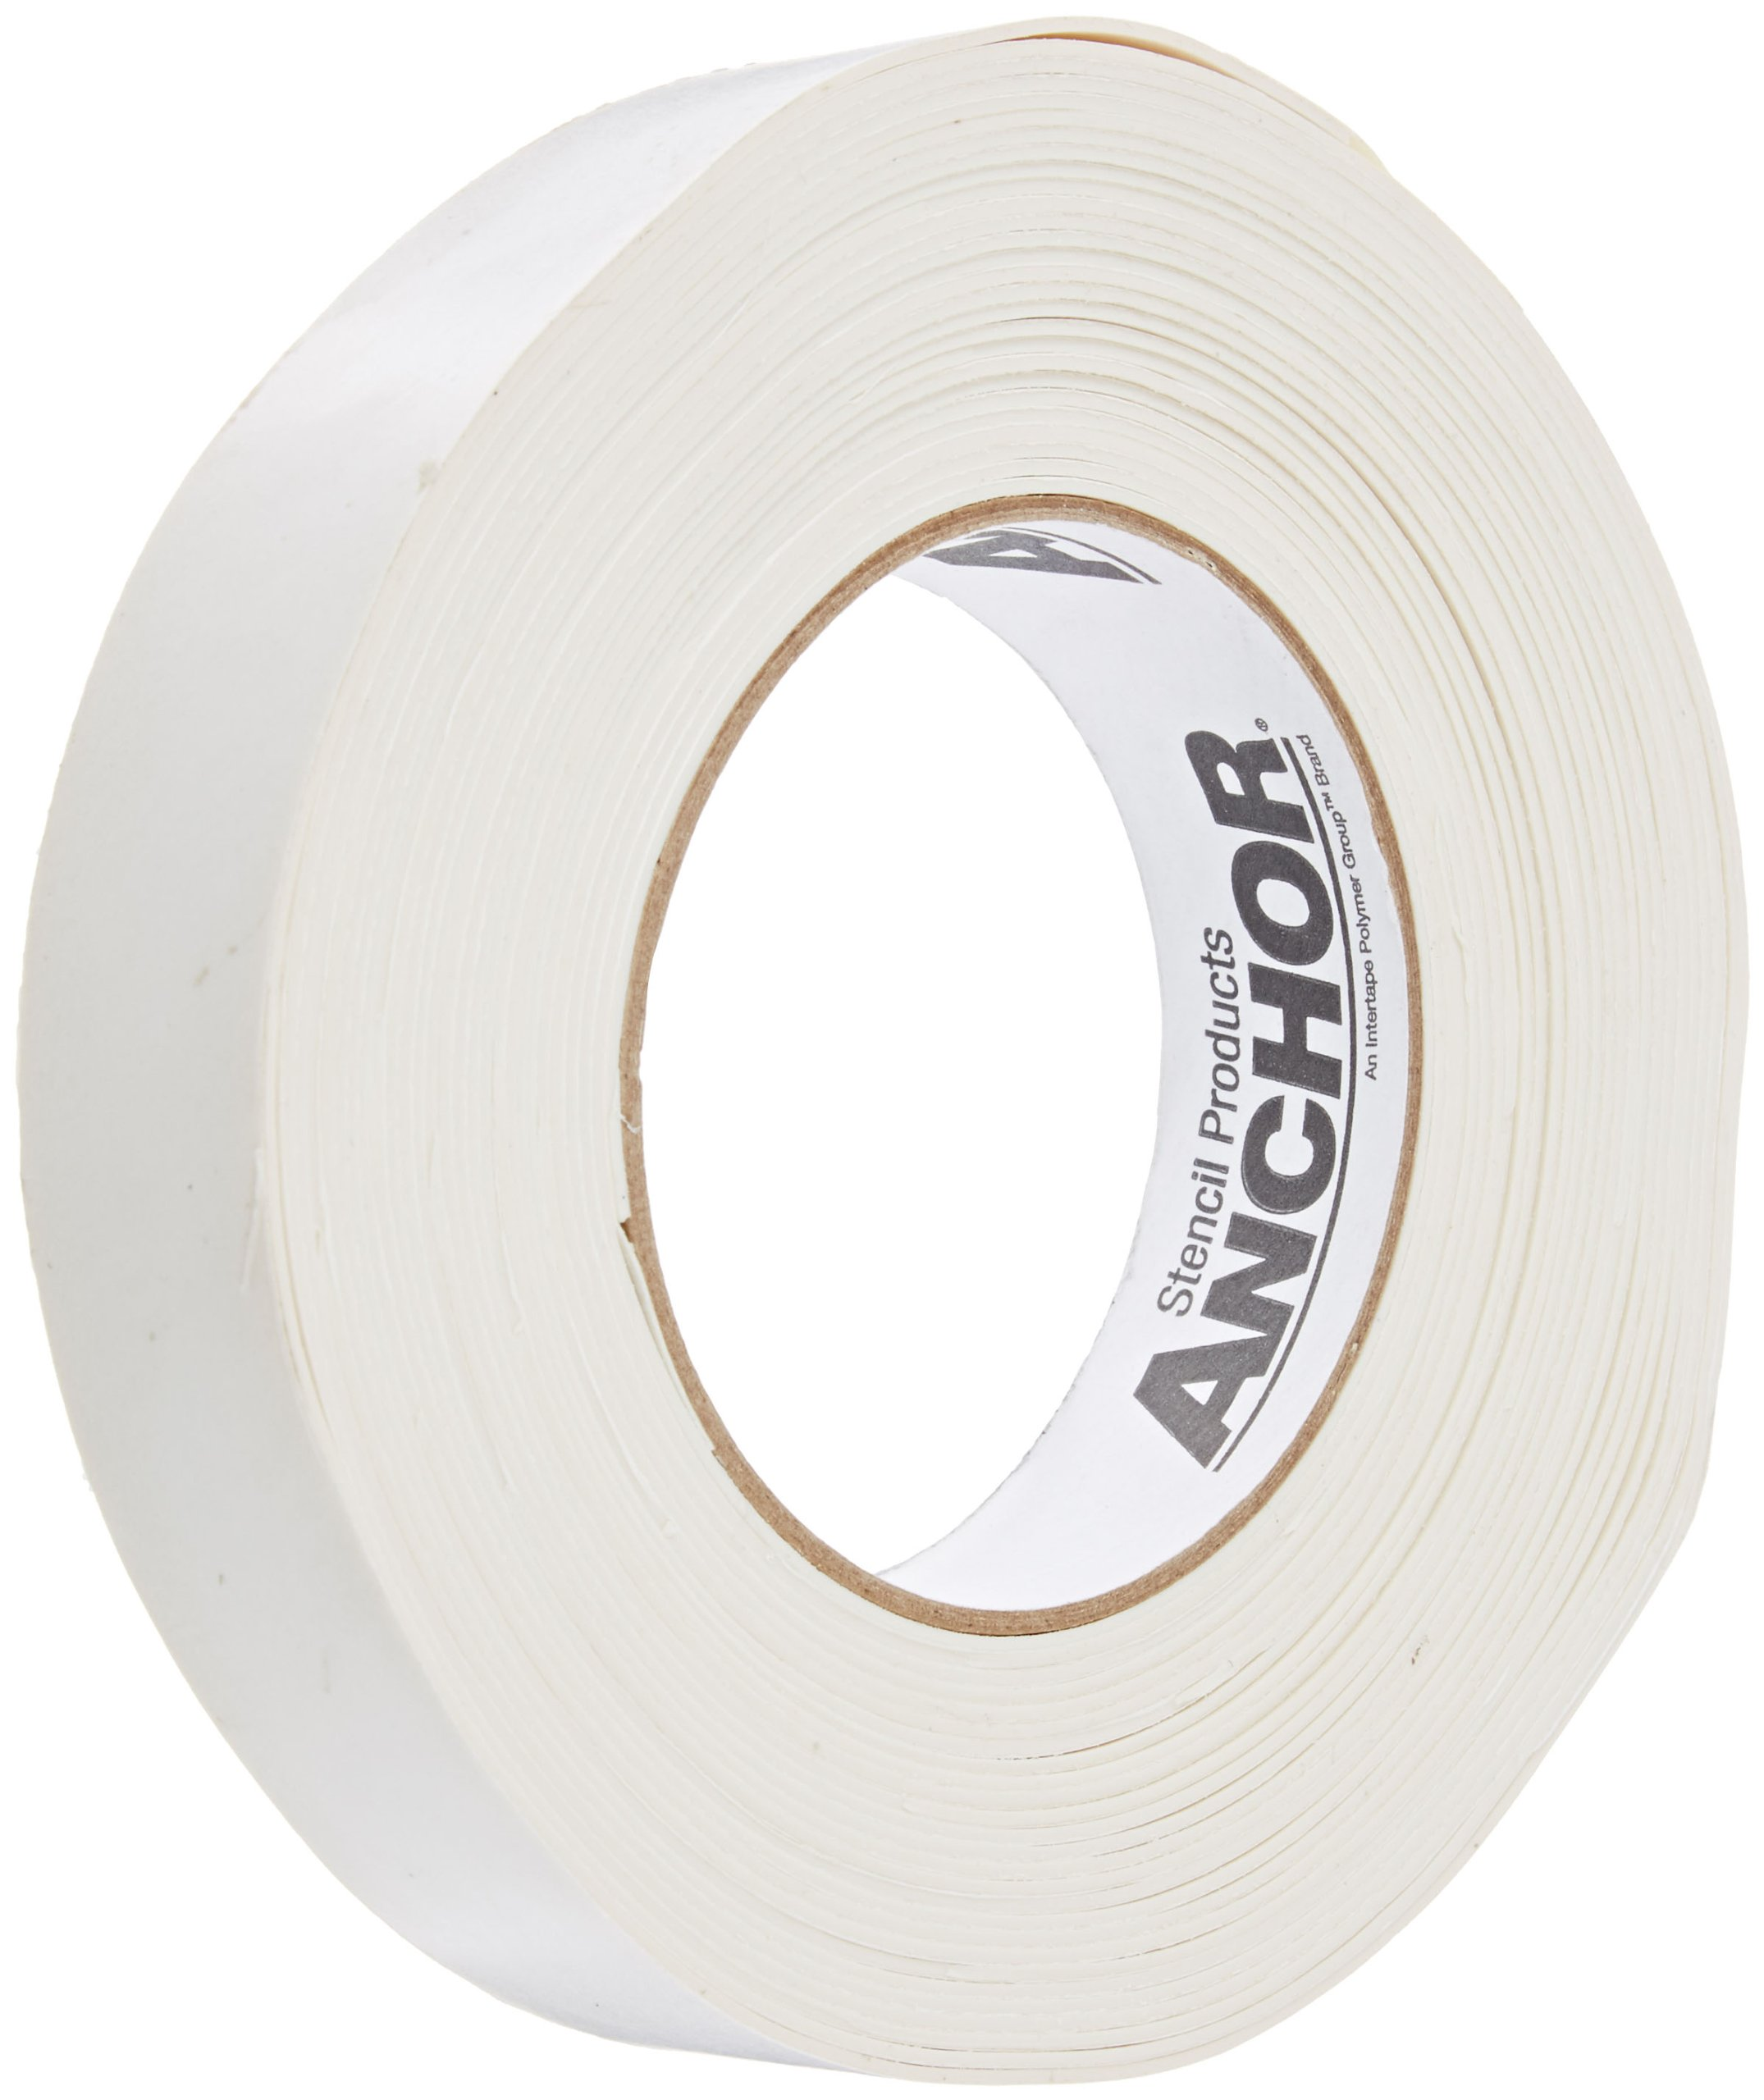 Maxi Blast Impact Acrylic Adhesive Tape, 45 mil Thick, 10 Yds Length, 1'' Width, Natural by Maxi